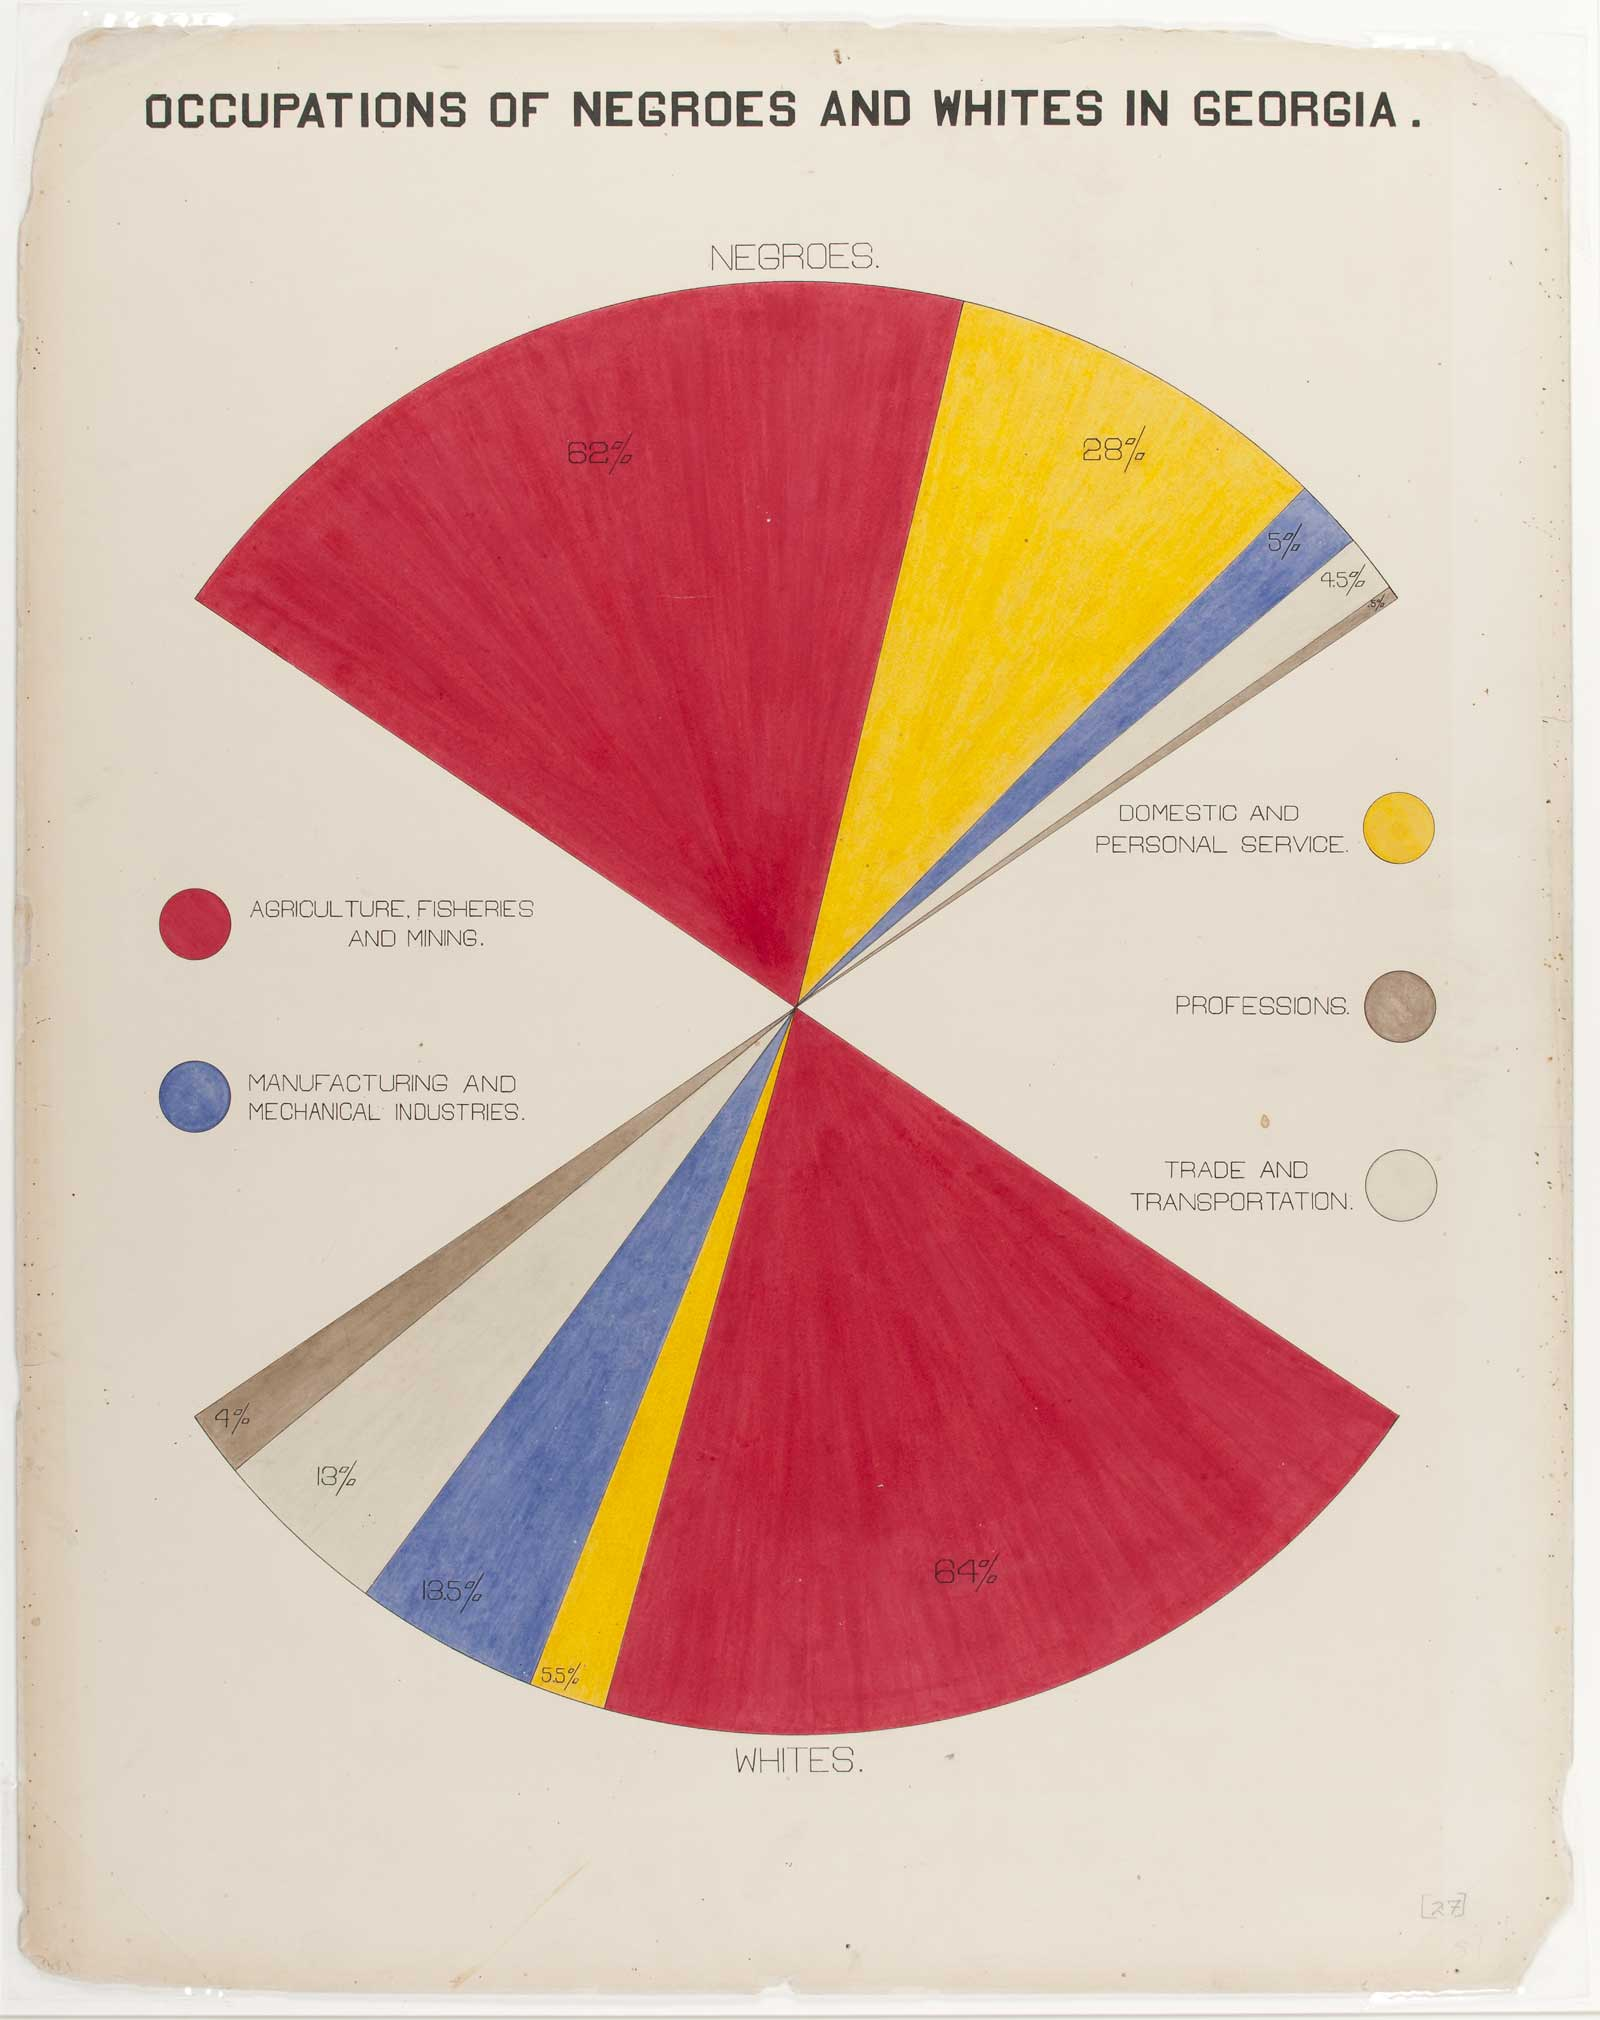 a pie chart with coloured sections blocked out